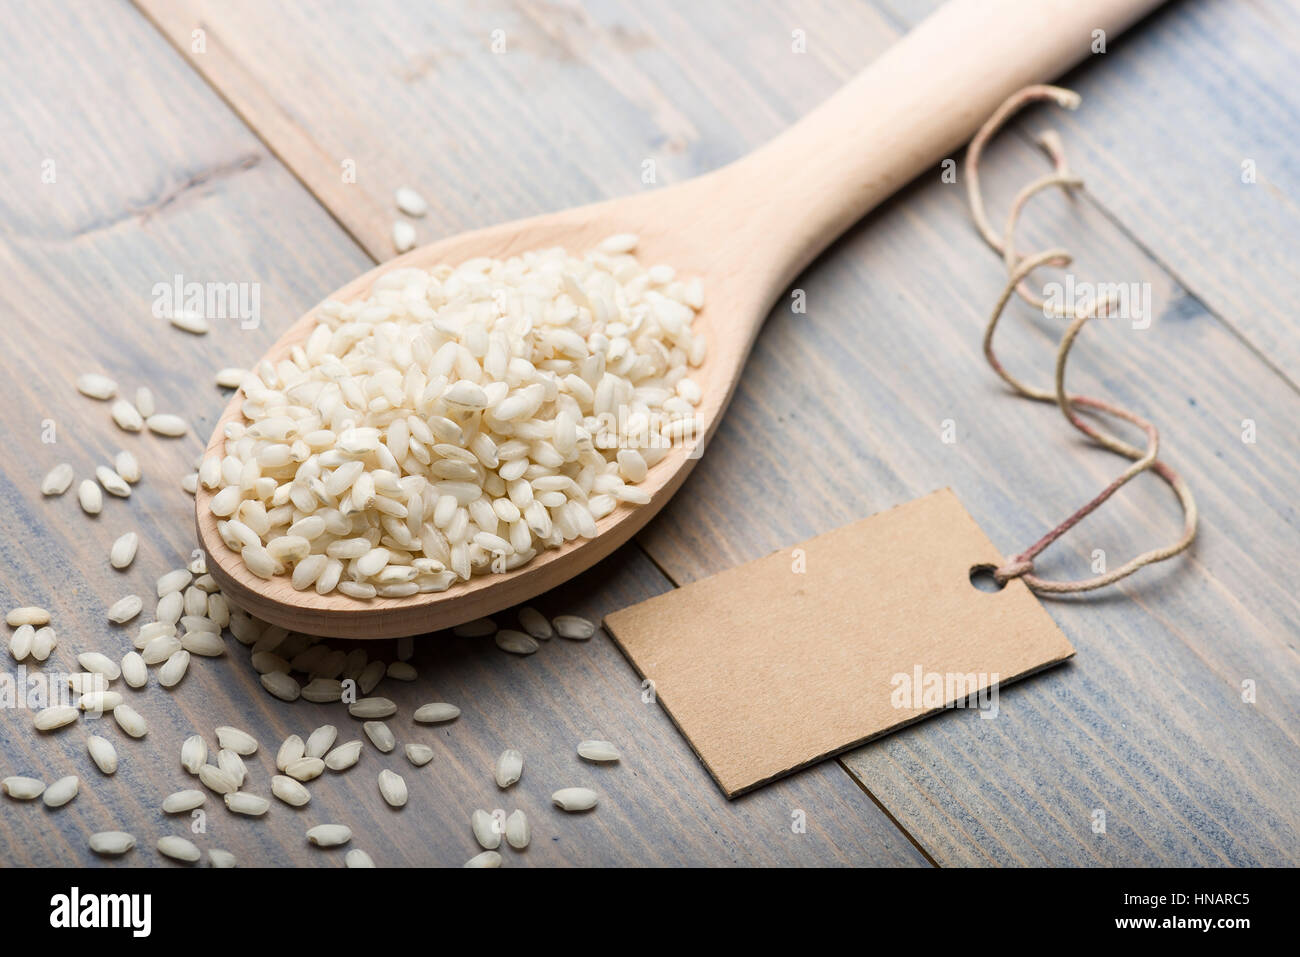 heap of white rice in wooden spoon on table with label for text. - Stock Image